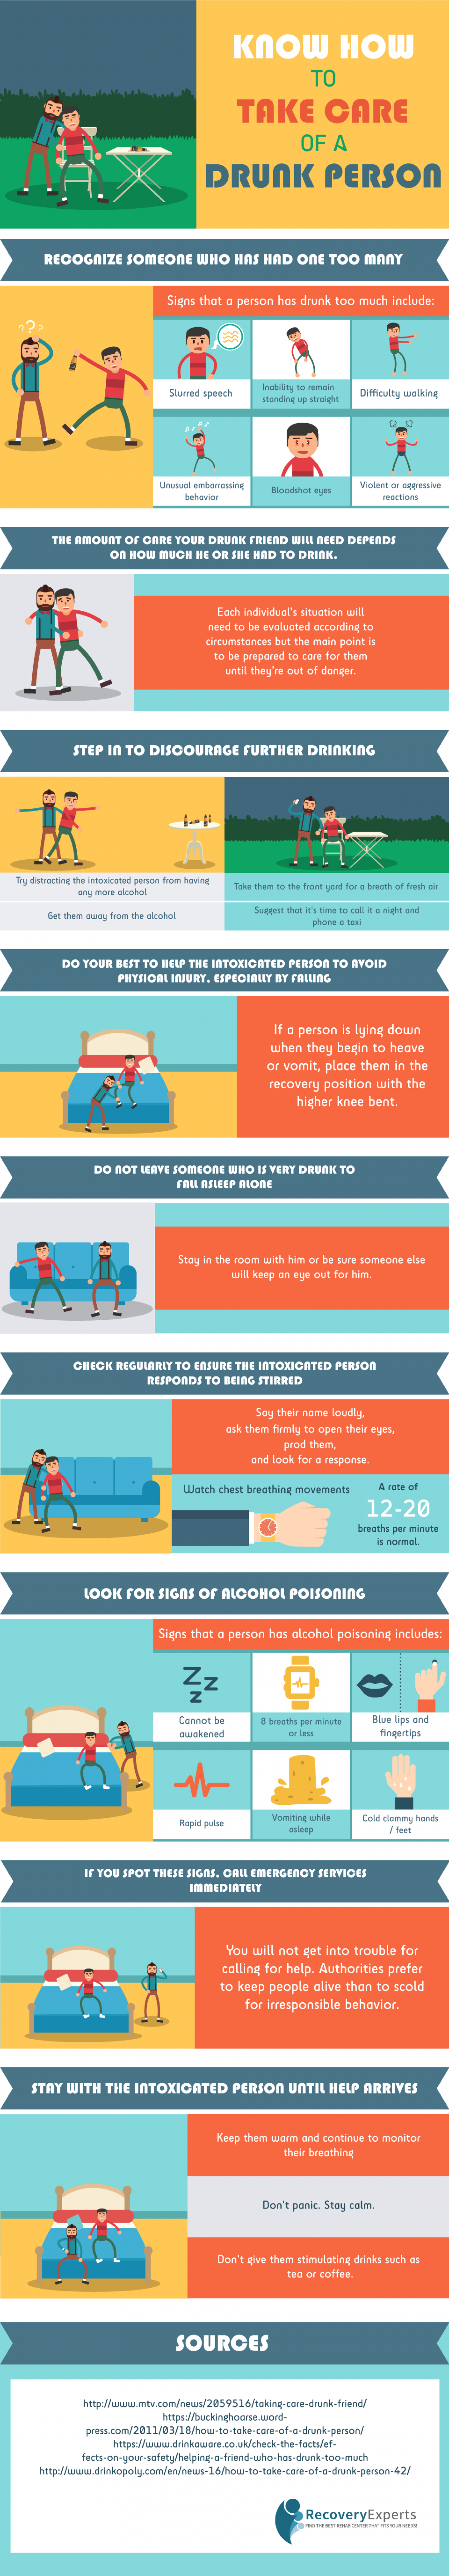 How to Take Care of a Drunk Person Infographic